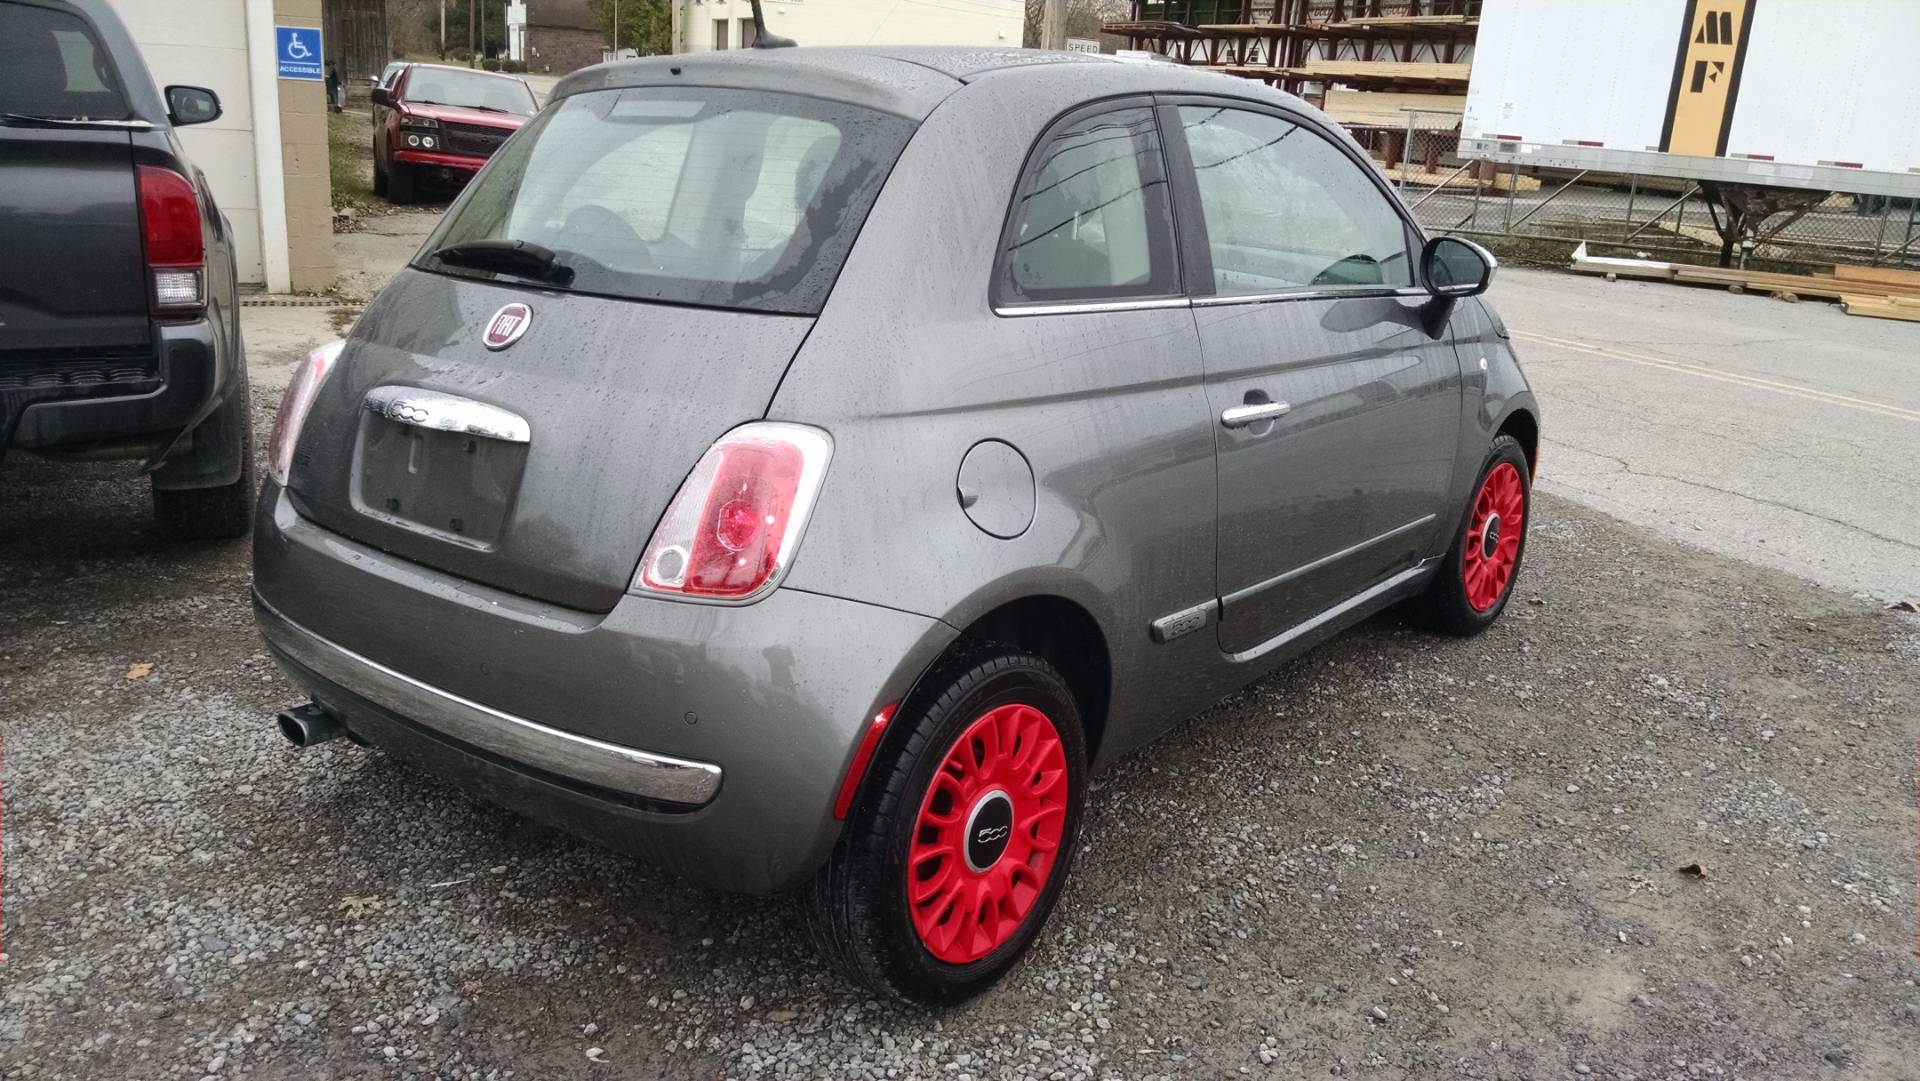 2013 Fiat 500 Lounge 5 spd manual in Harmony, Pennsylvania - Photo 2